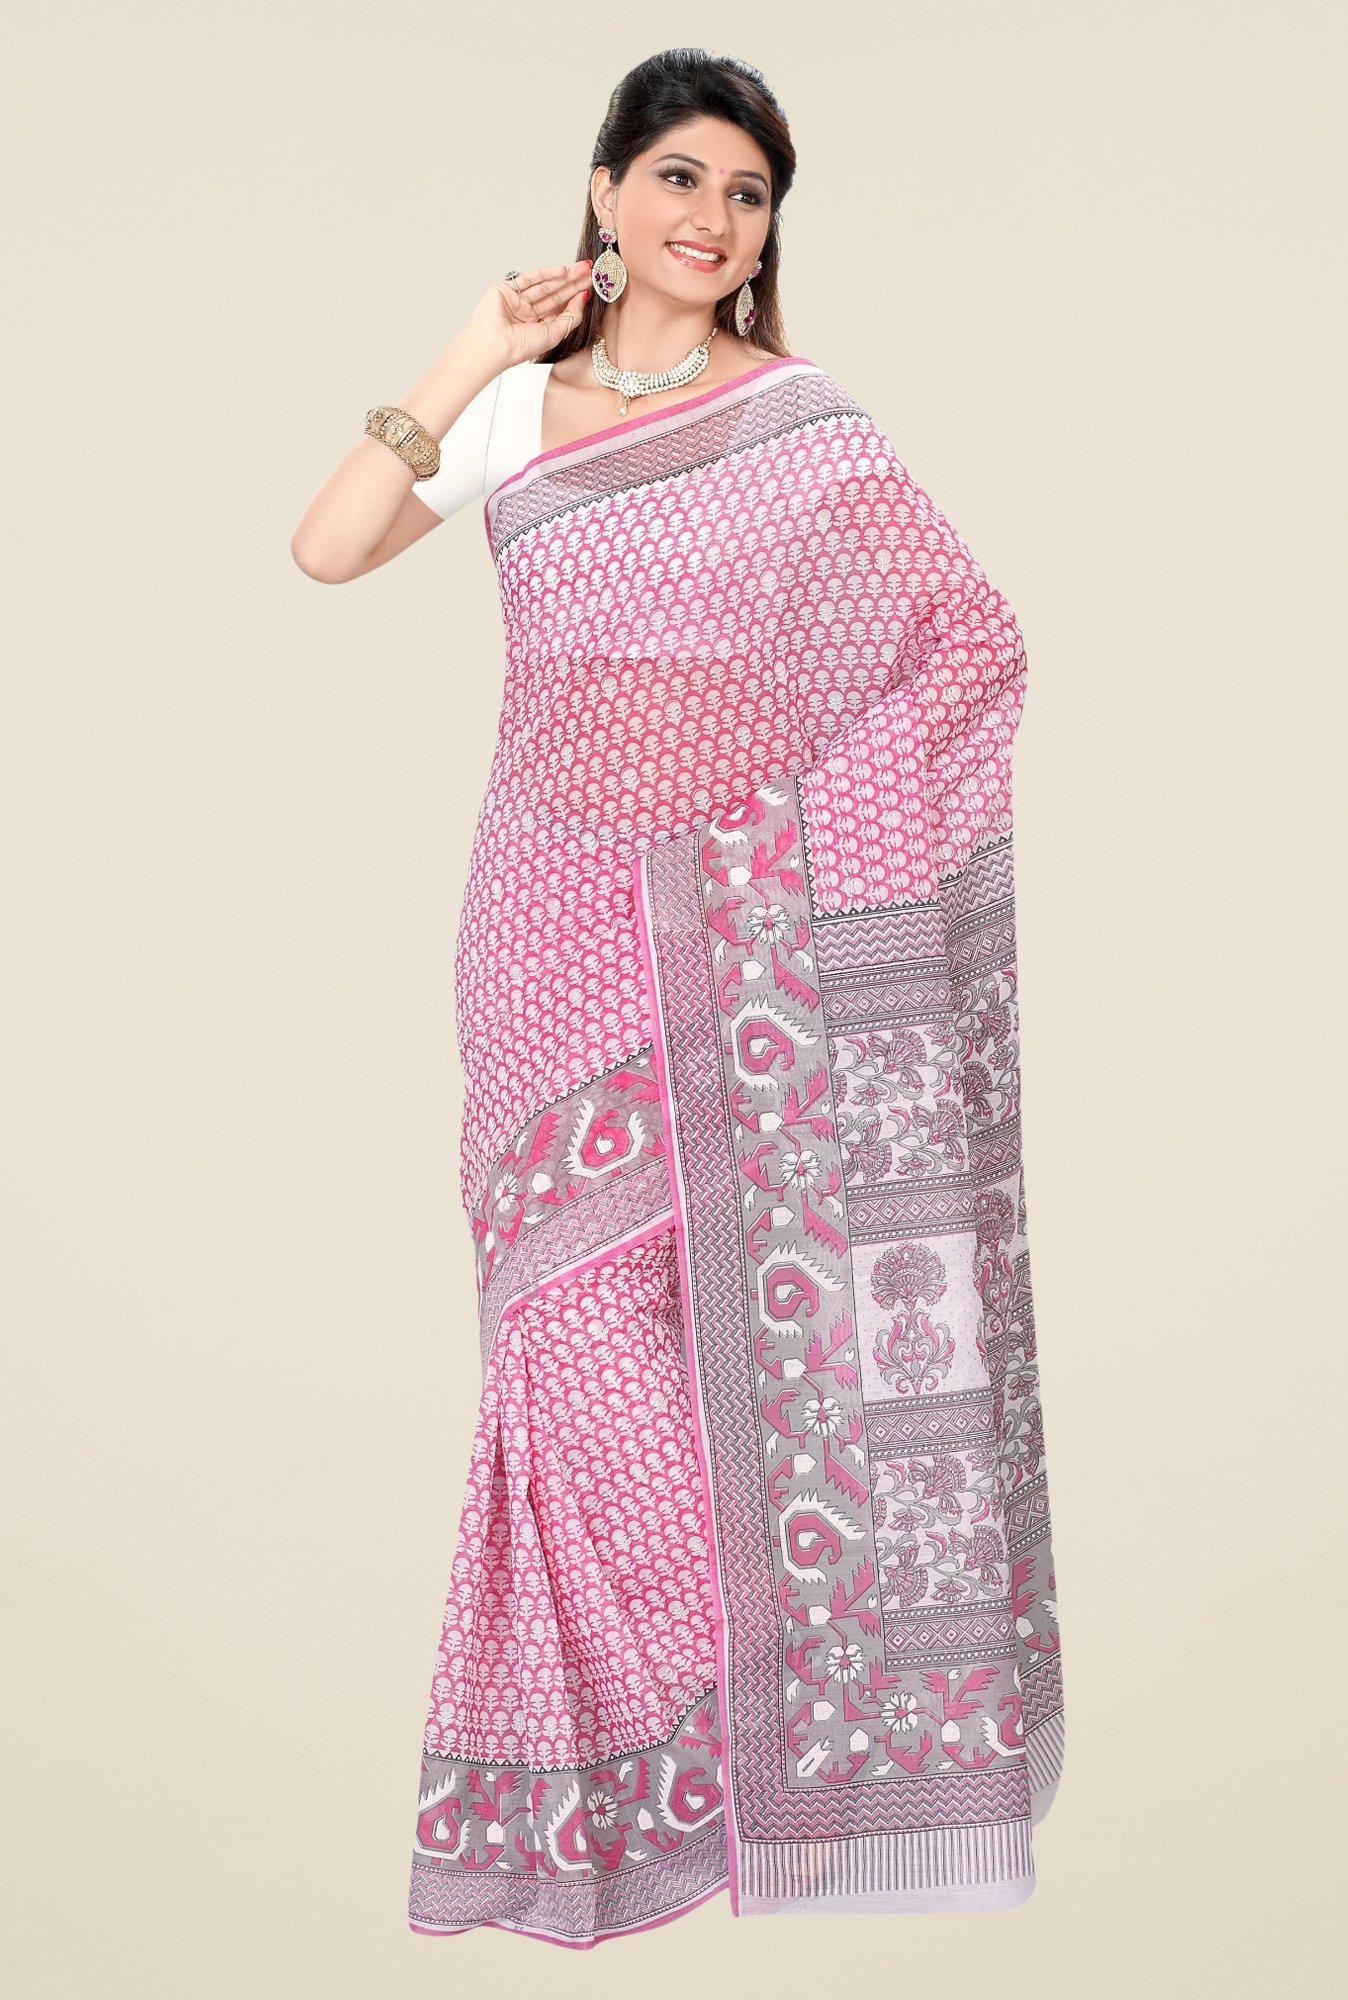 Triveni Pink Printed Blended Cotton Saree